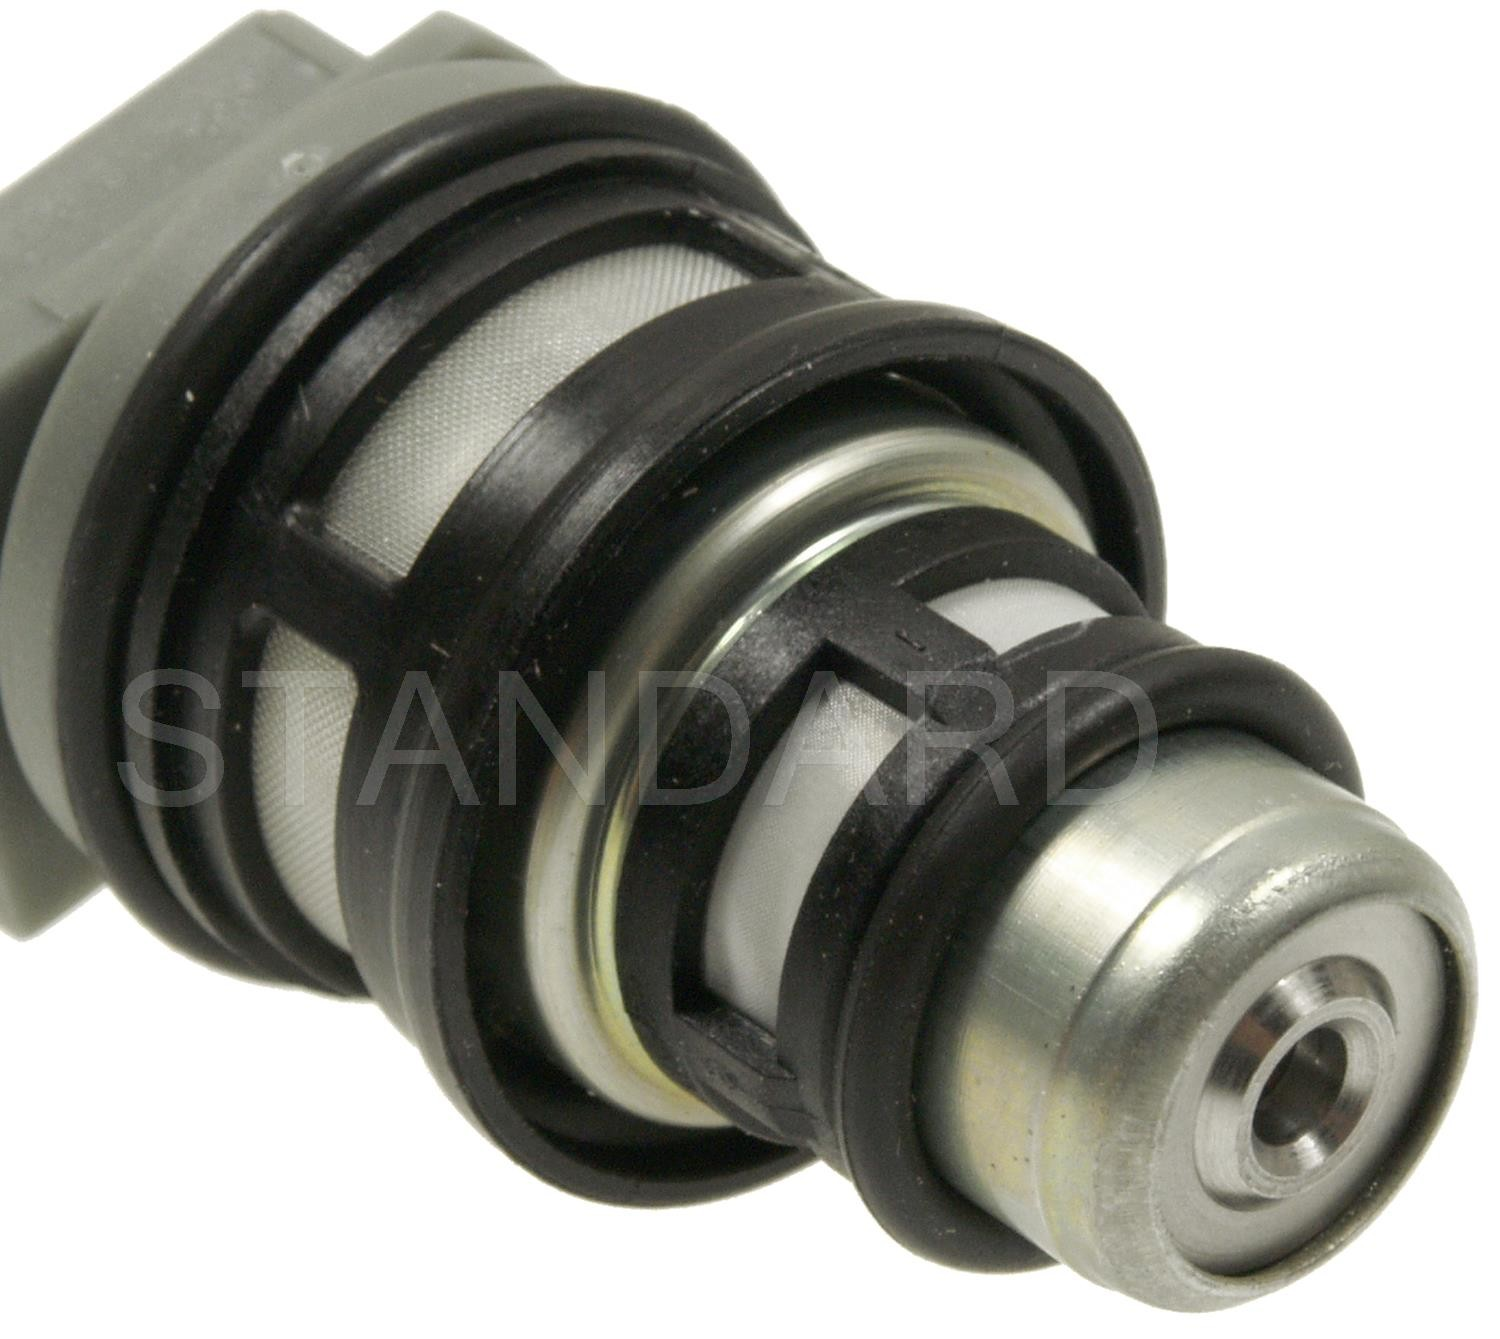 1994 Buick Century Fuel Injector 94 Filter Si Fj100rp4